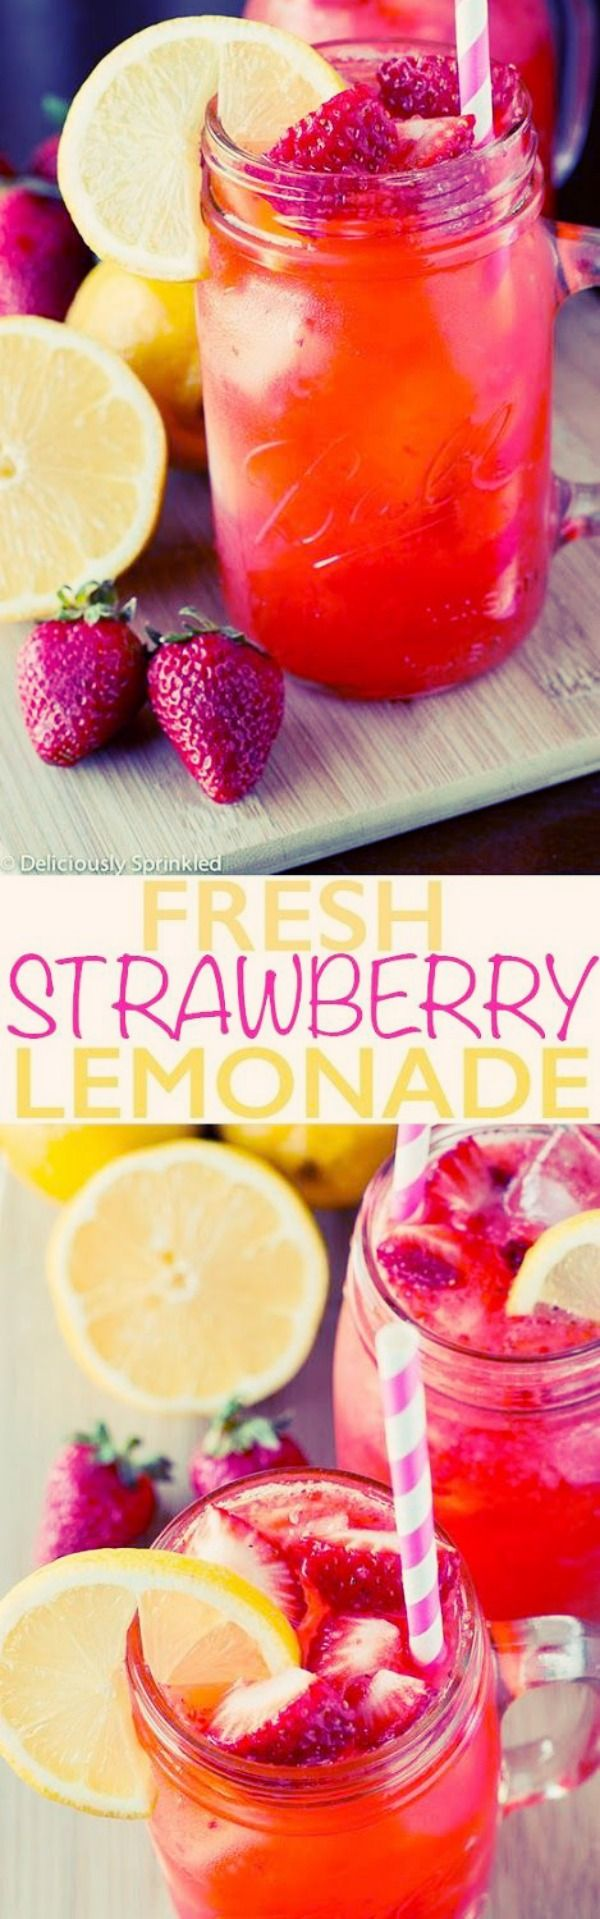 Fresh Strawberry Lemonade | *Subtitute sugar for honey!* This Fresh Strawberry Lemonade is a super easy, quick, and refreshing summer drink. As soon as the weather starts to get warm, I'm instantly craving a nice cold glass of this delicious strawberry lemonade. via: @delicisprinkled